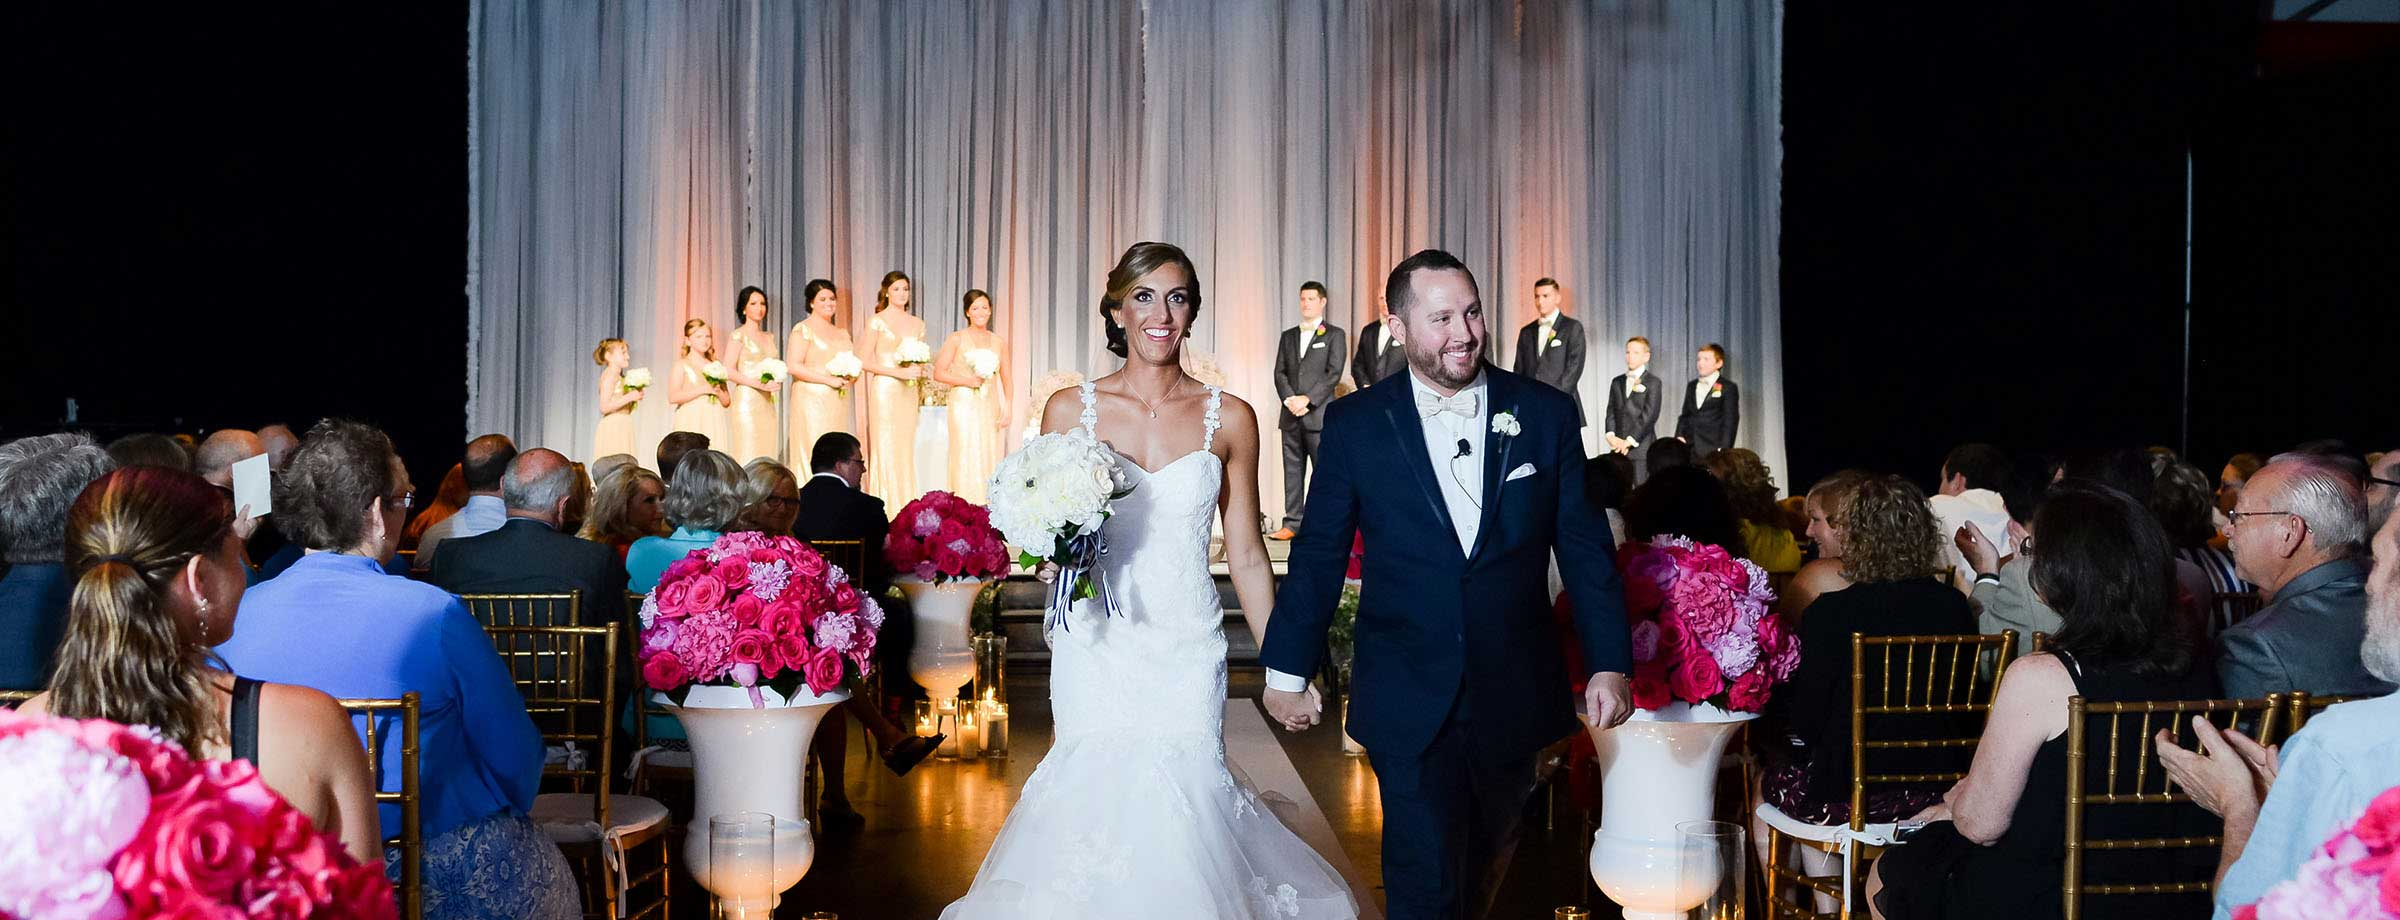 Mr. and Mrs. walking down the aisle at The Crane Bay in Indianapolis Indiana